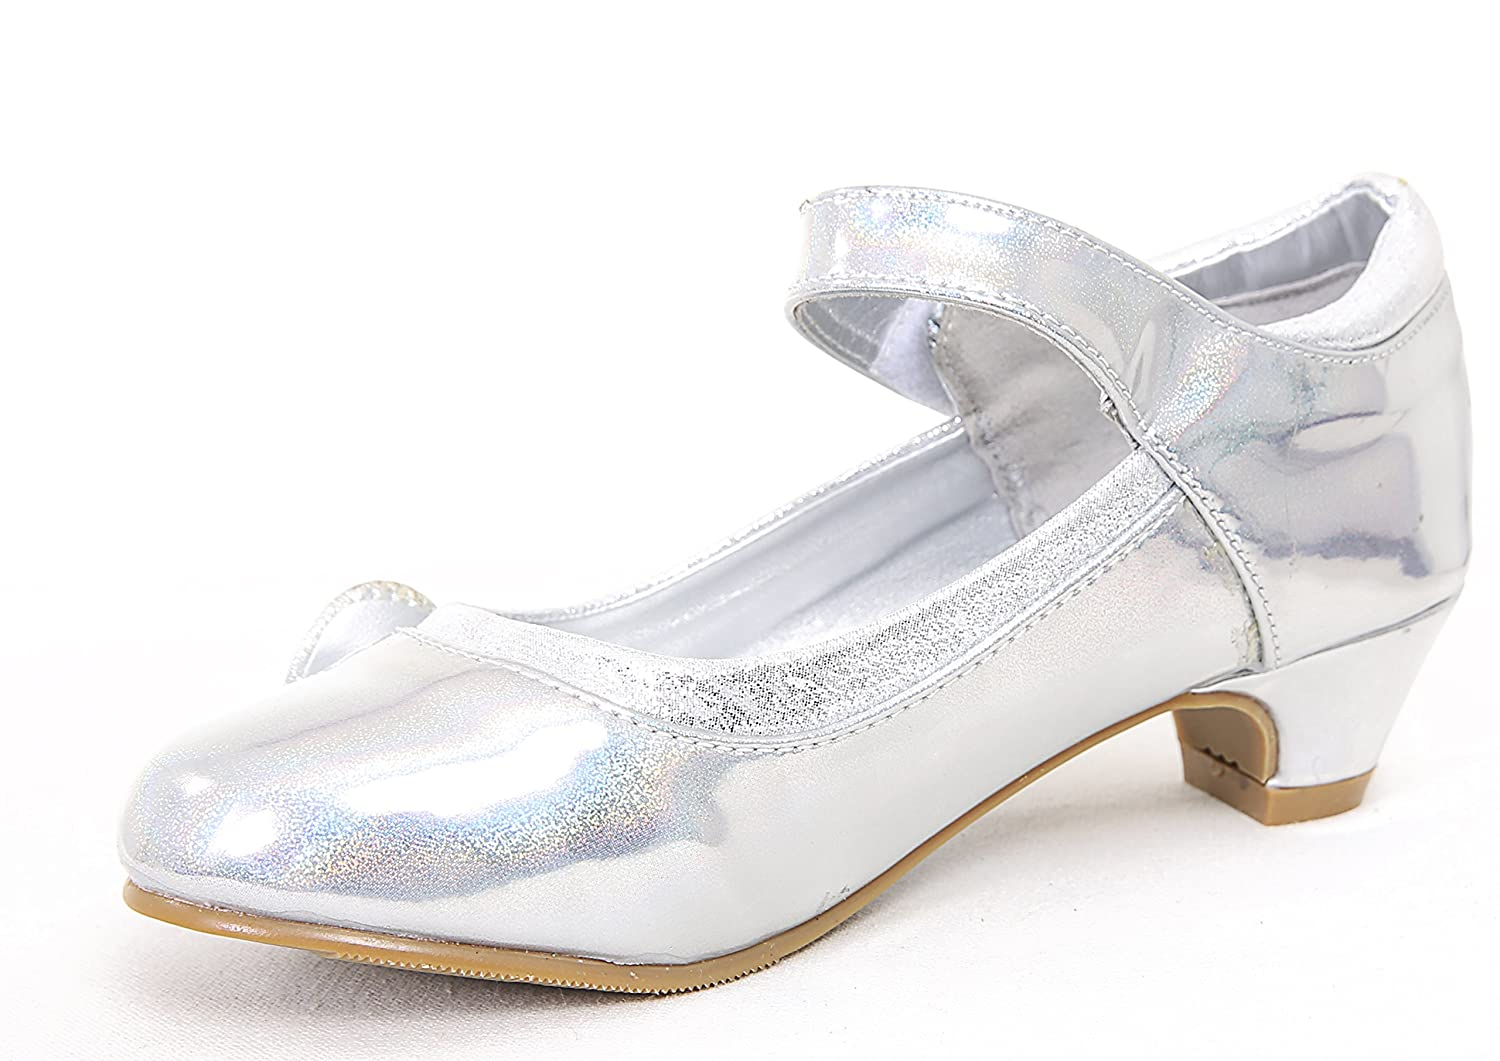 (BS-52) - NEW GIRLS KIDS CHILDRENS SHINY METALLIC DRESSY DIAMANTE BOW STONE  LOW KITTEN HEEL PARTY WEDDING SANDALS COURT SHOES ALL SIZES: Amazon.co.uk:  Shoes ...